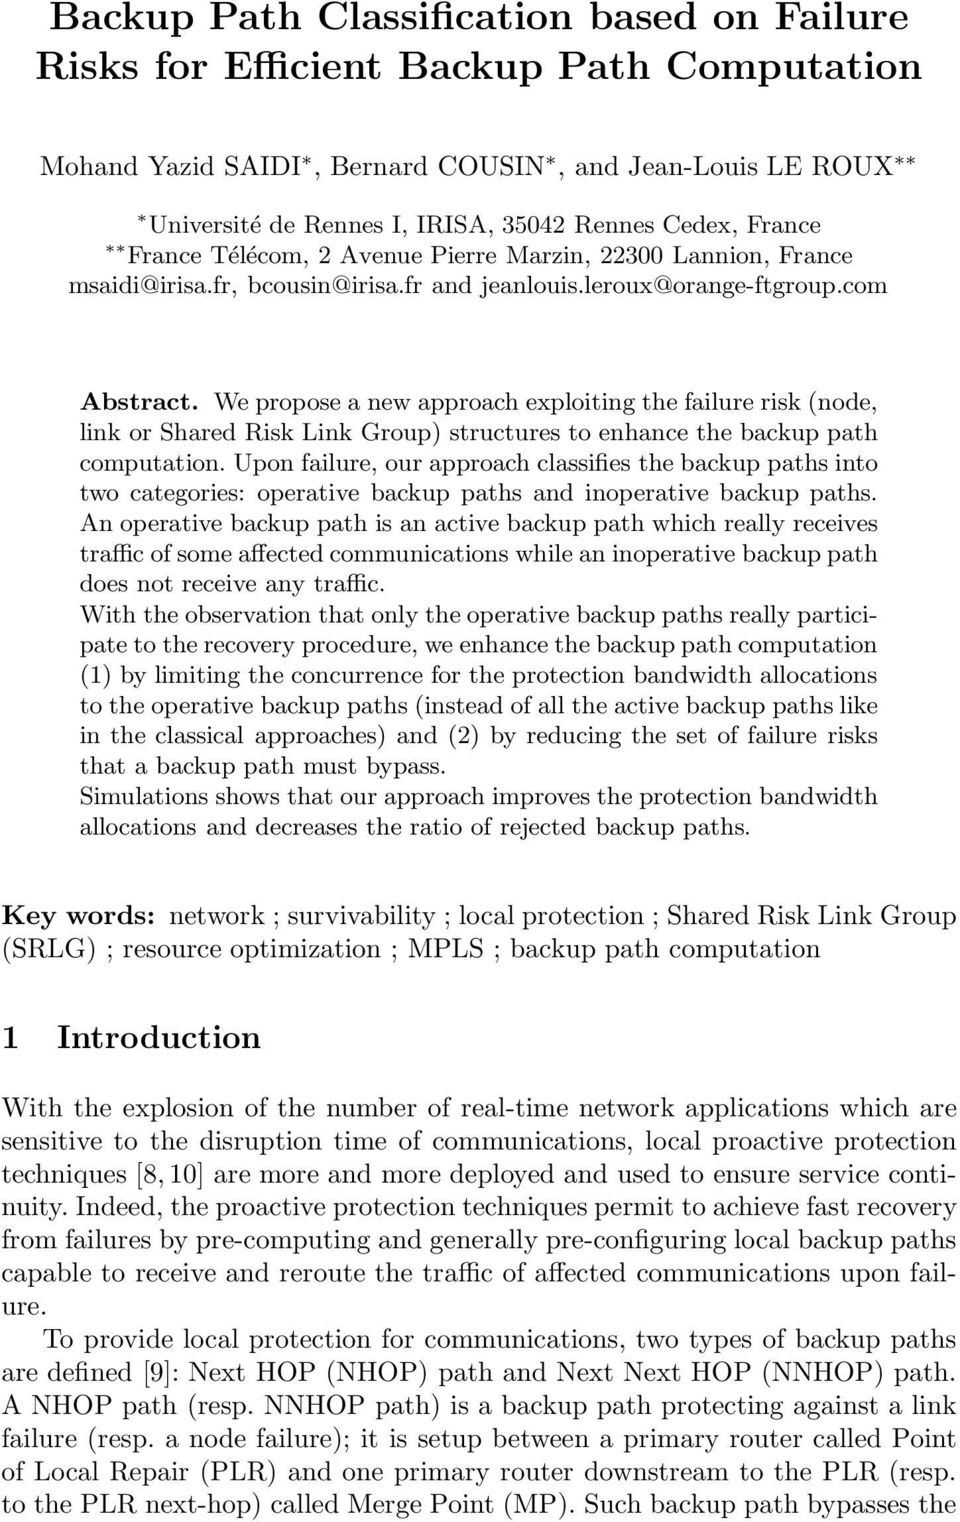 We propose a new approach exploiting the failure risk (node, link or Shared Risk Link Group) structures to enhance the backup path computation.